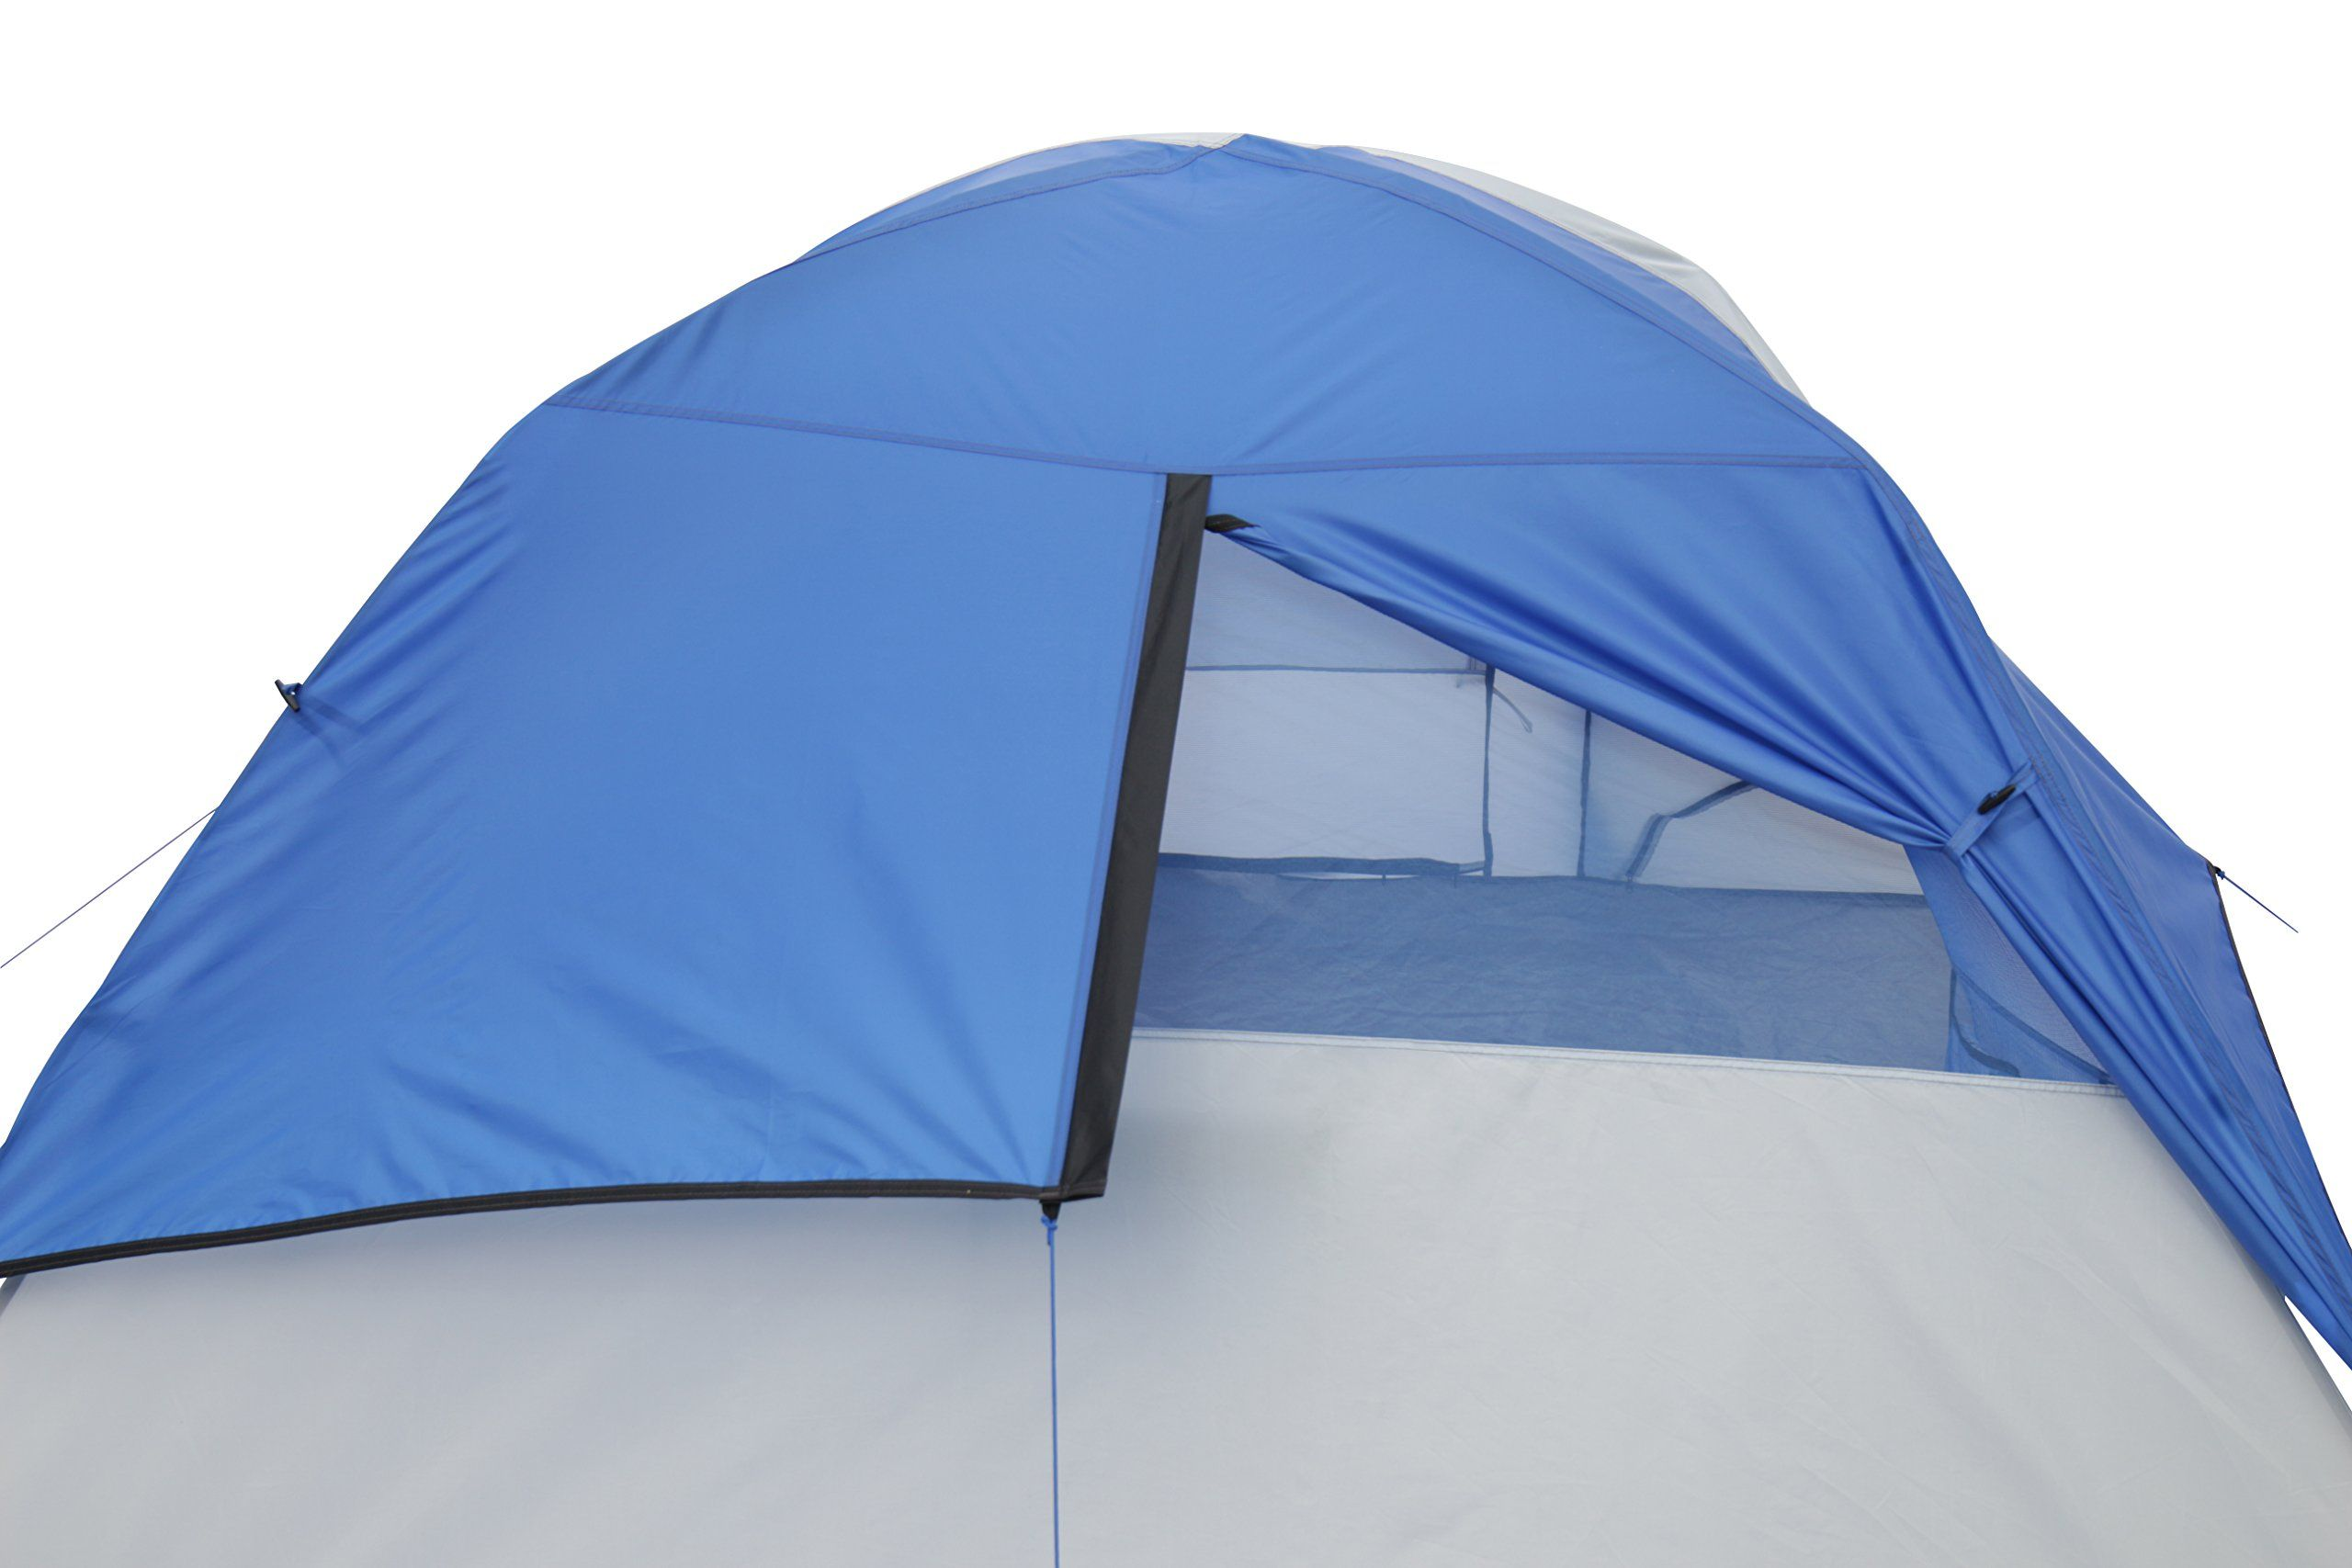 Ozark Trail 4 Person Dome Tent With Power Pocket for